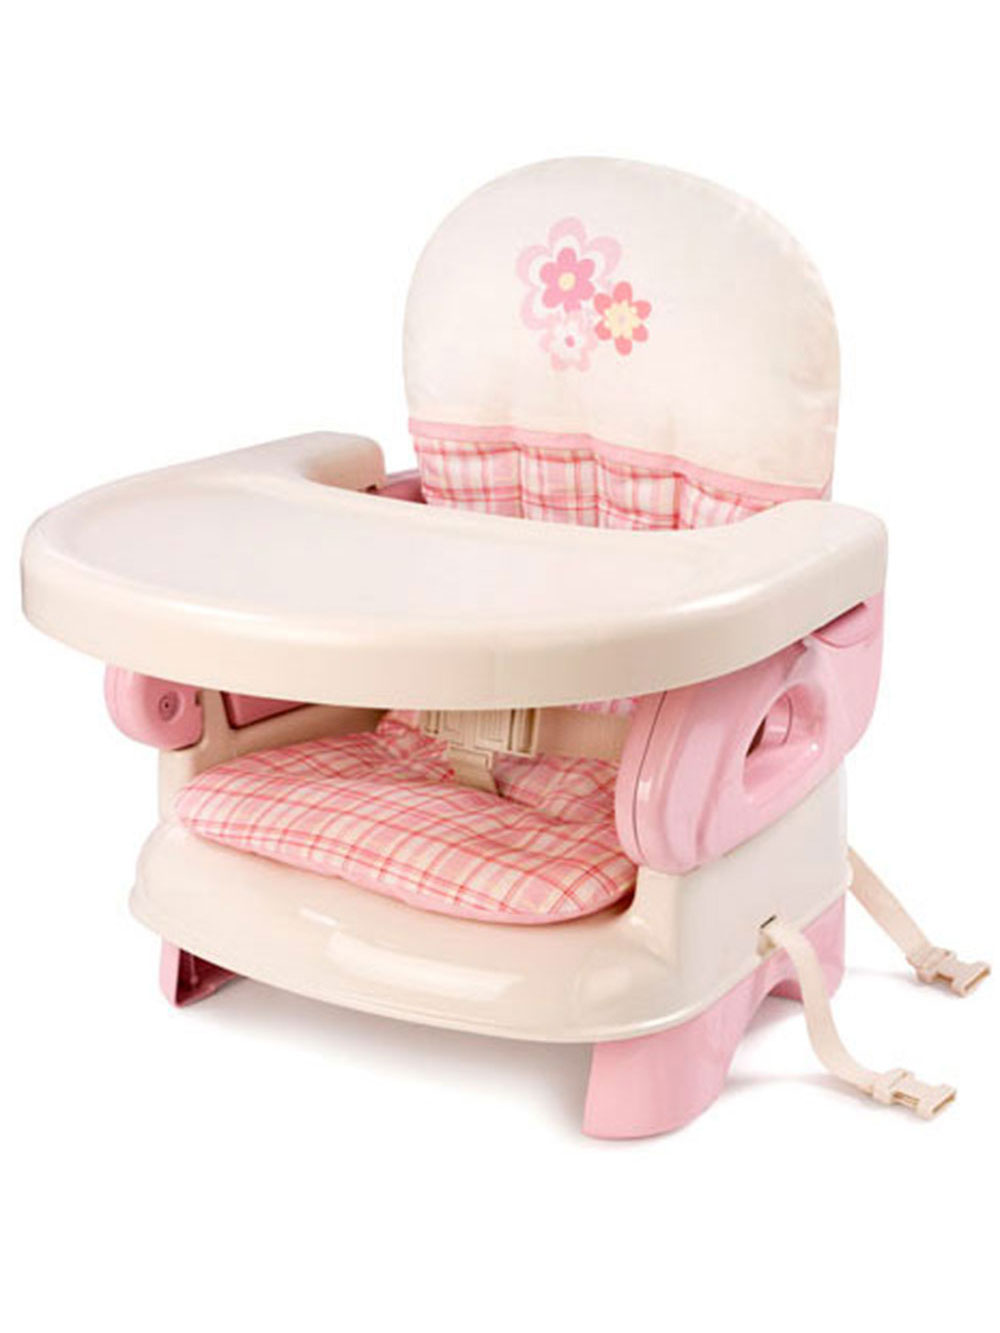 Summer Infant Deluxe Folding Booster Seat, Pink